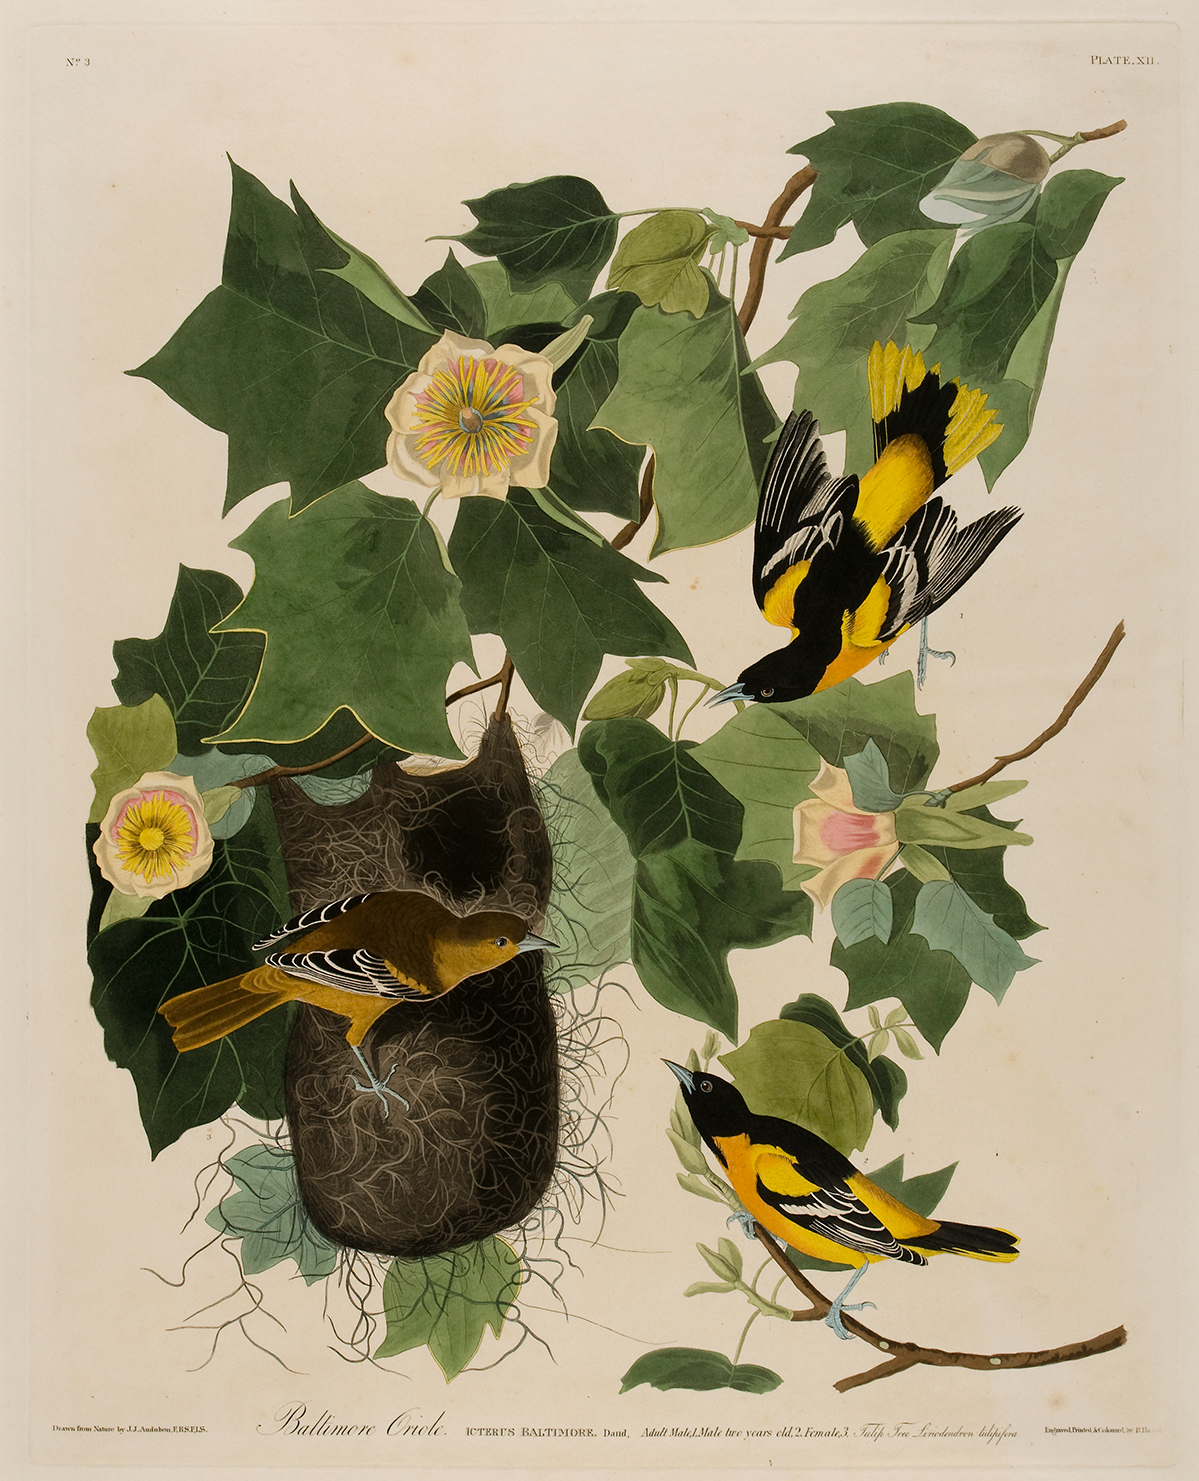 An oriole tends to a nest.